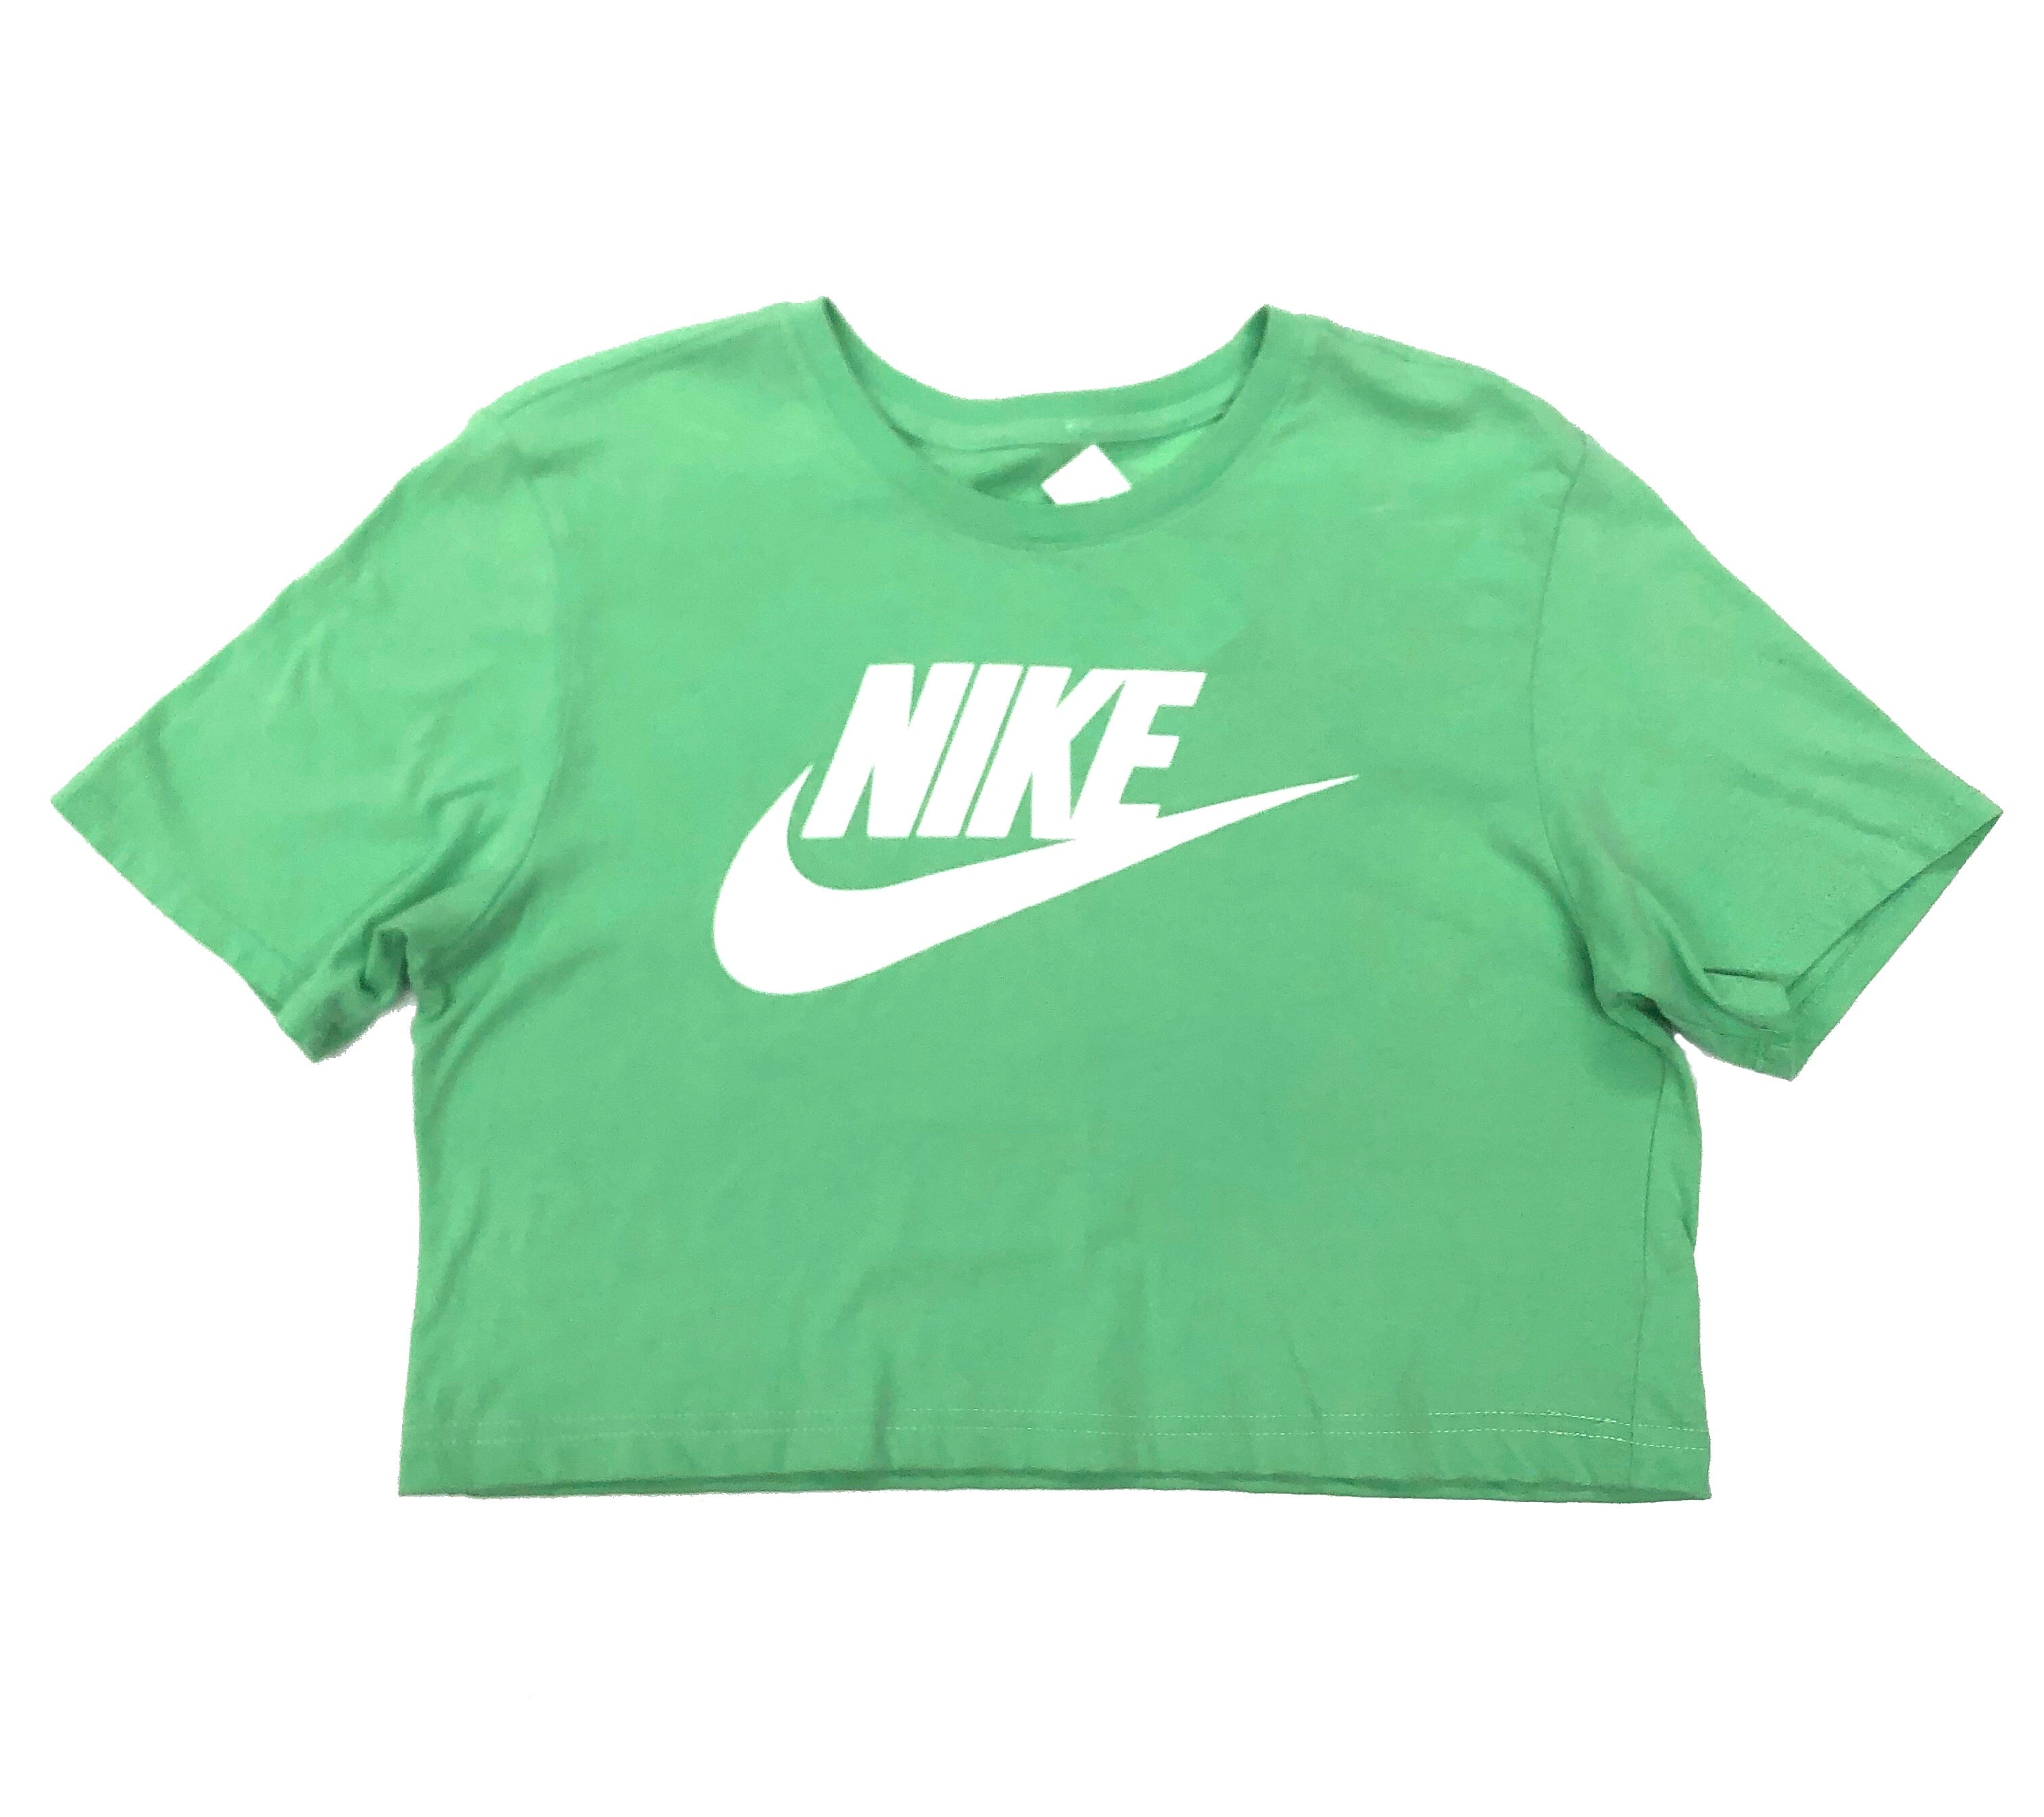 Nike Mint Green Nike Crop